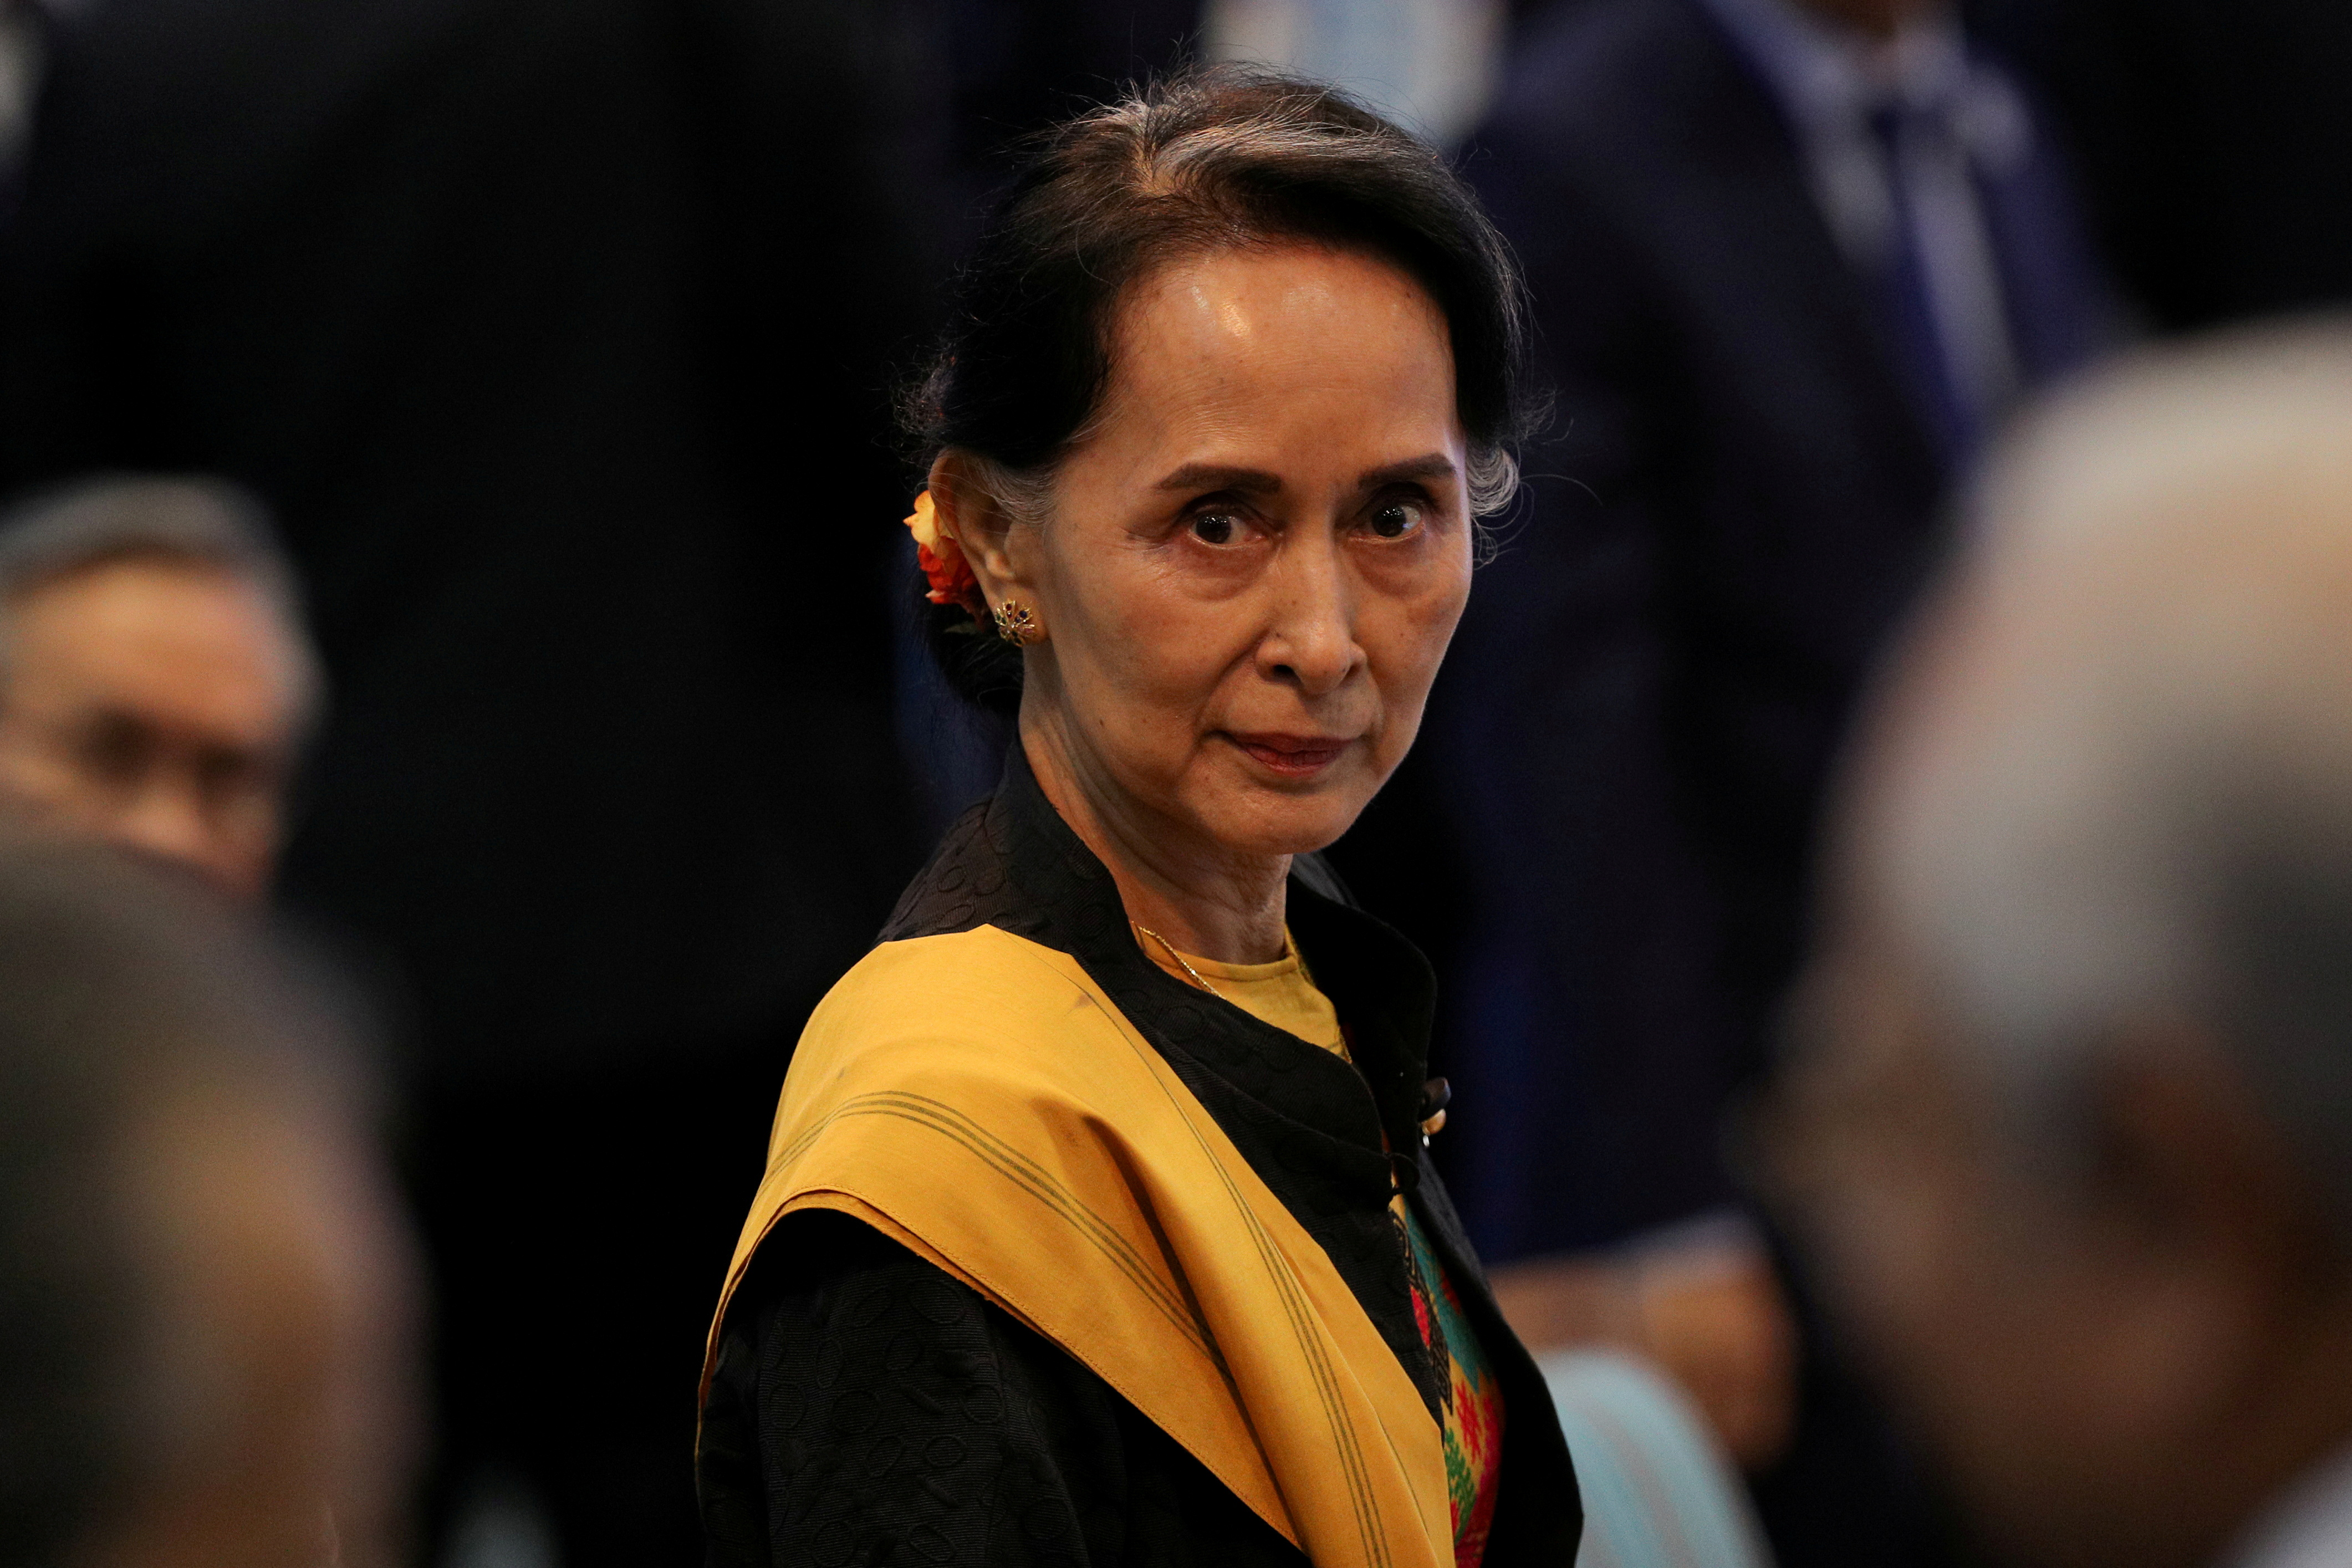 Myanmar State Counselor Aung San Suu Kyi attends the opening session of the 31st ASEAN Summit in Manila, Philippines, November 13, 2017. REUTERS/Athit Perawongmetha/File Photo